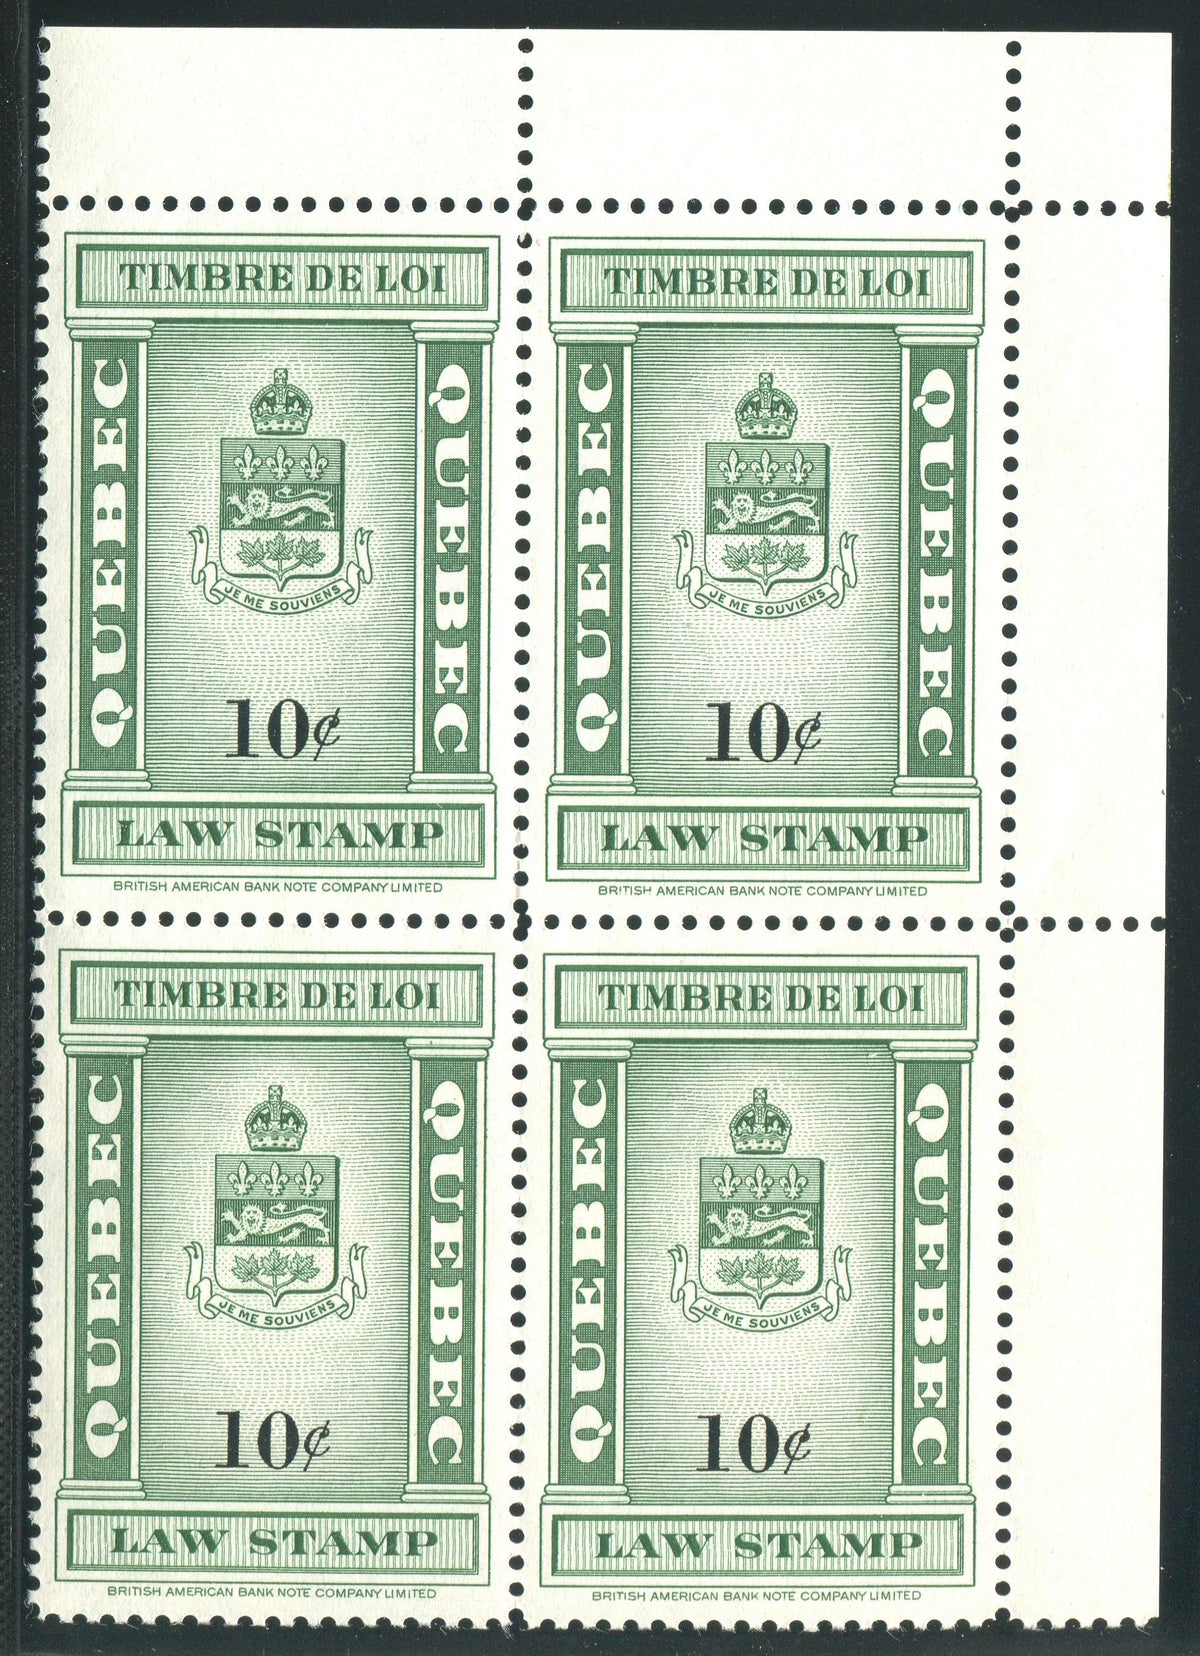 0109QL1708 - QL109 - Mint Block of 4